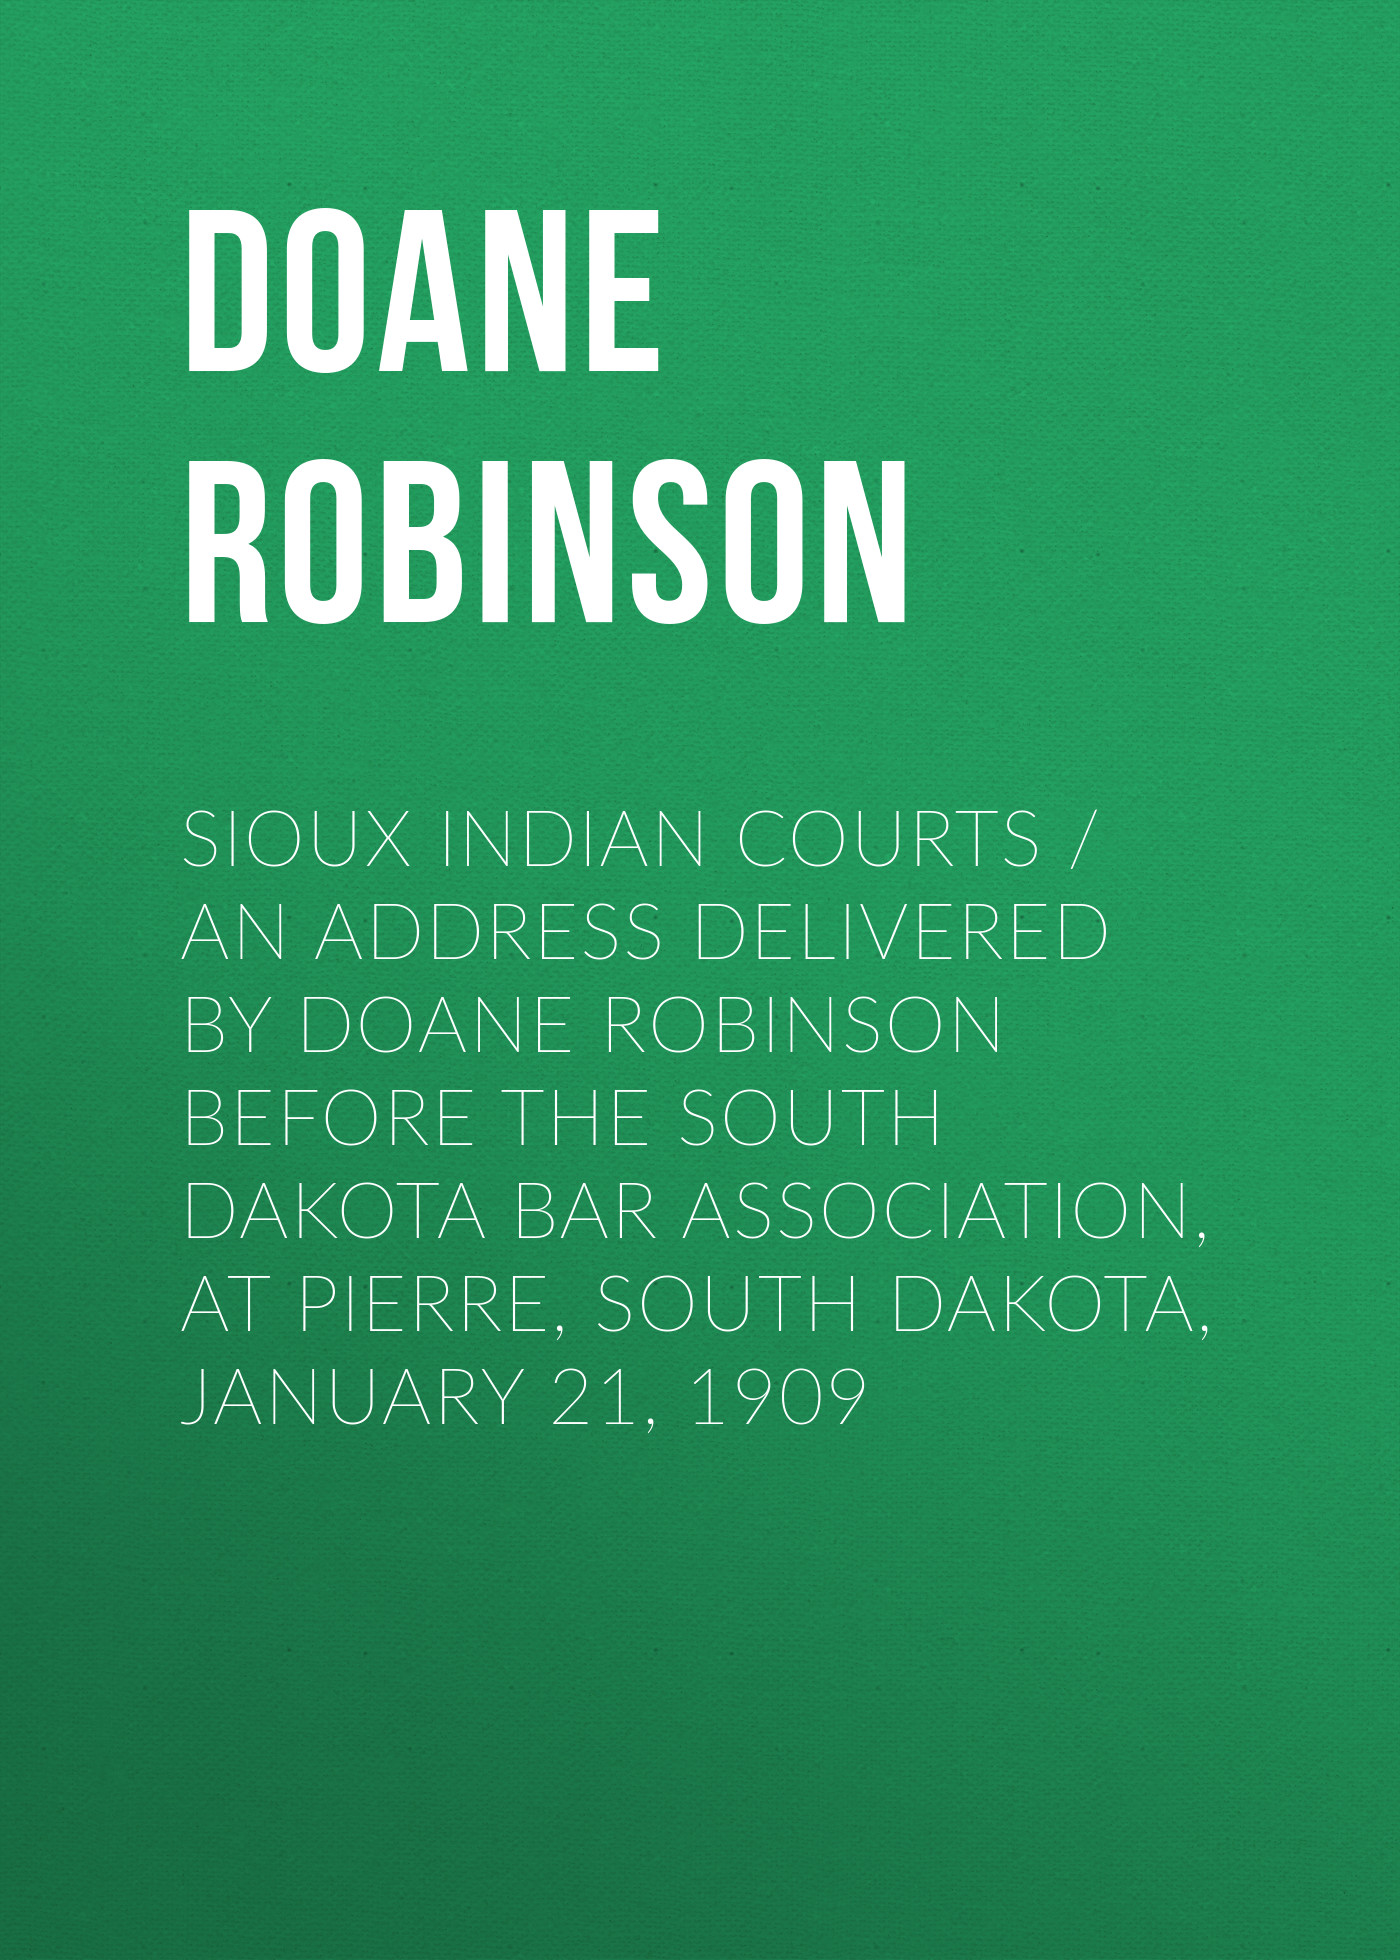 Doane Robinson Sioux Indian Courts / An address delivered by before the South Dakota Bar Association, at Pierre, Dakota, January 21, 1909